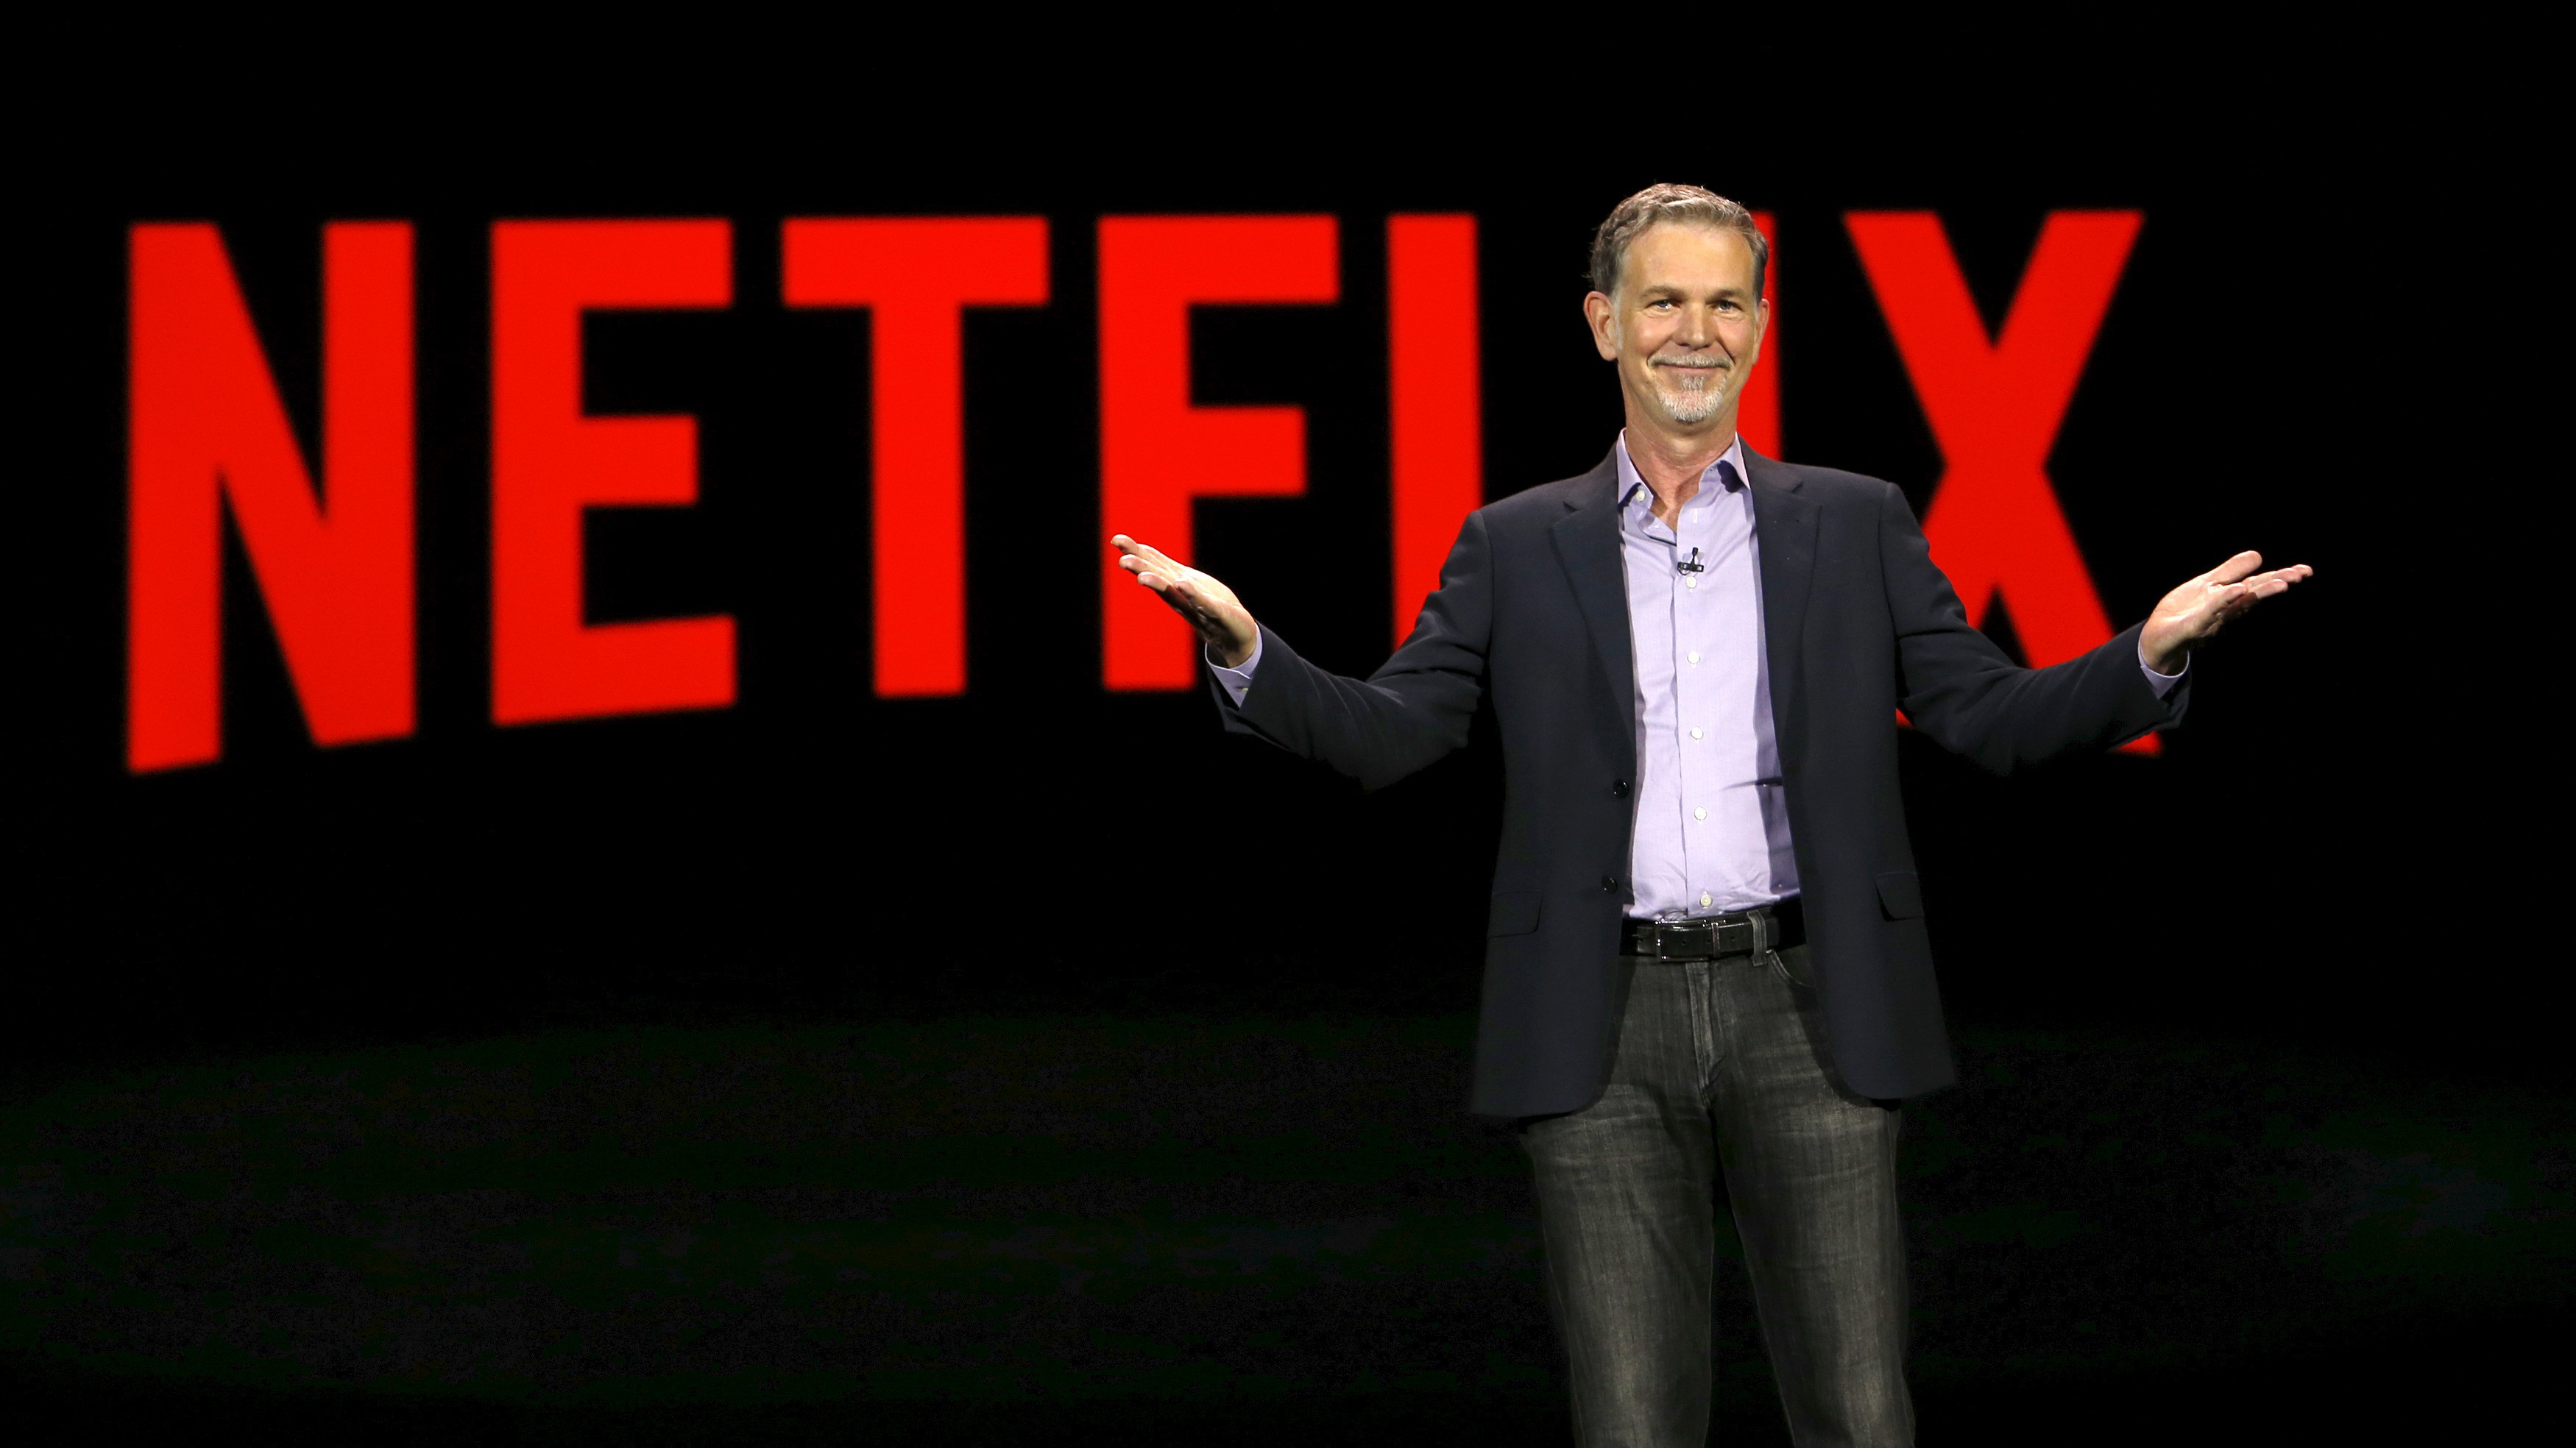 Reed Hastings shrugs on stage with Netflix logo behind